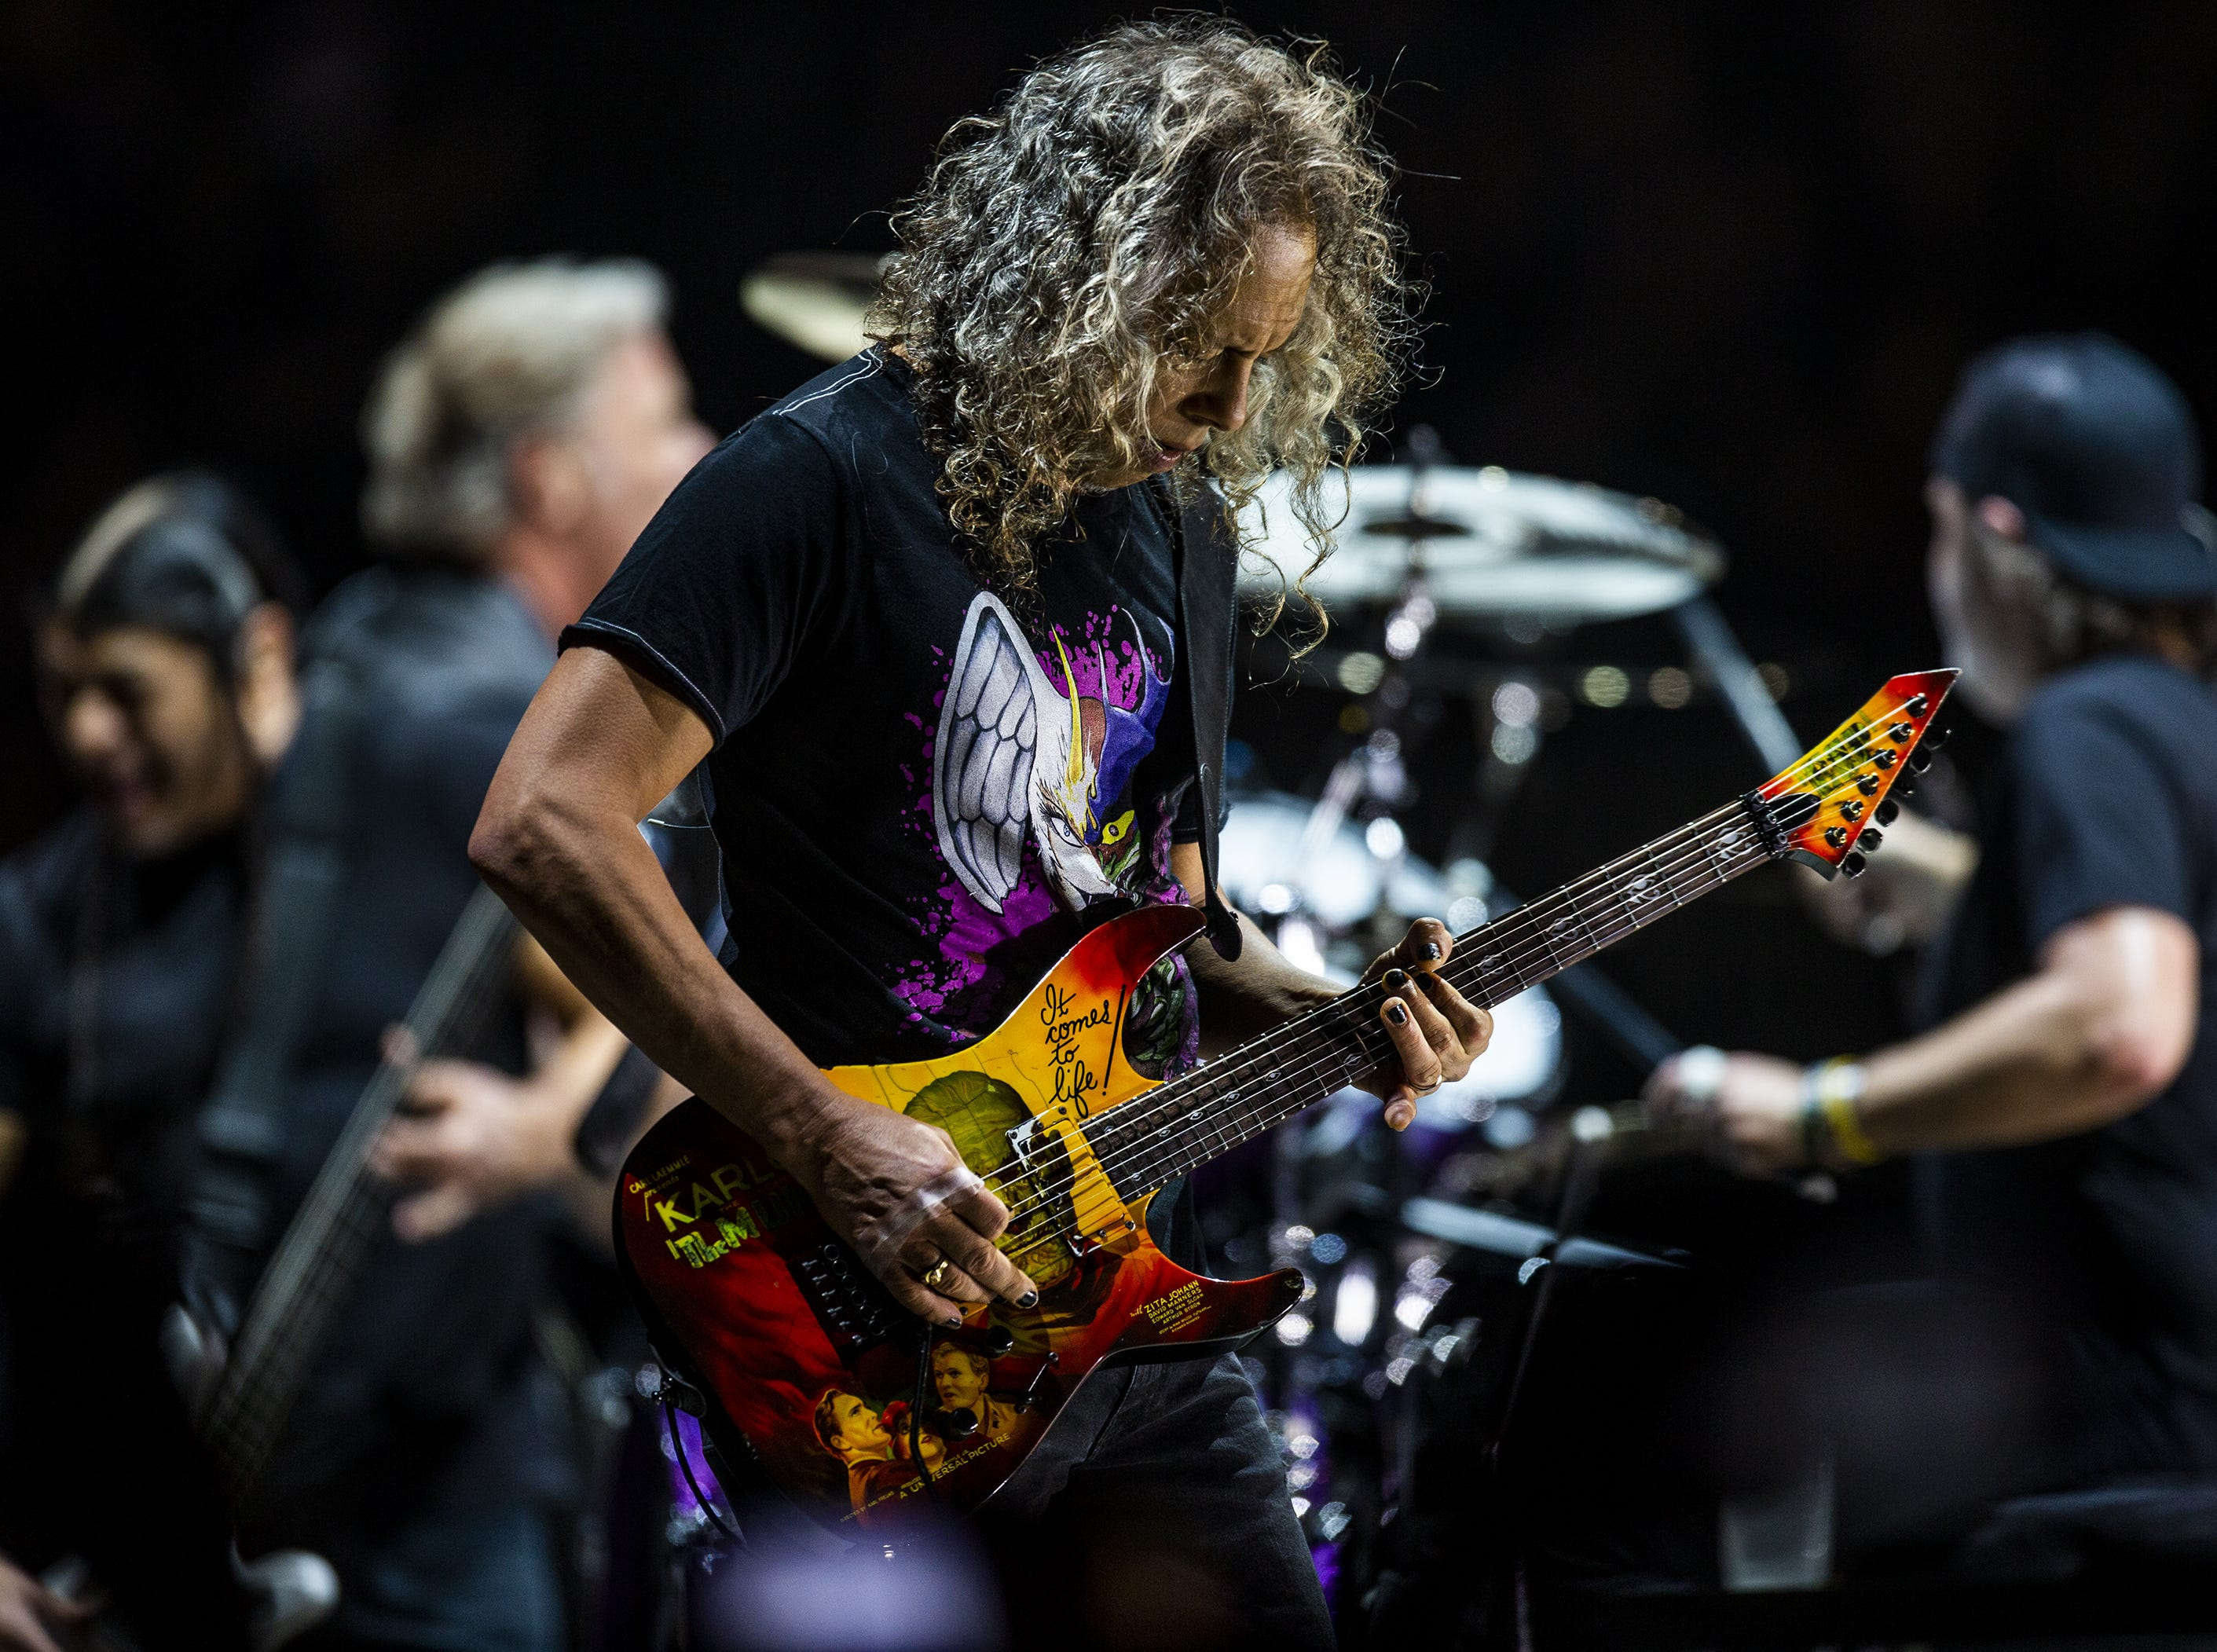 Kirk Hammett, Metallica's lead guitarist, let a solo rip while performing at the KFC Yum Center in downtown Louisville, Ky. on Saturday, March 9, 2019.